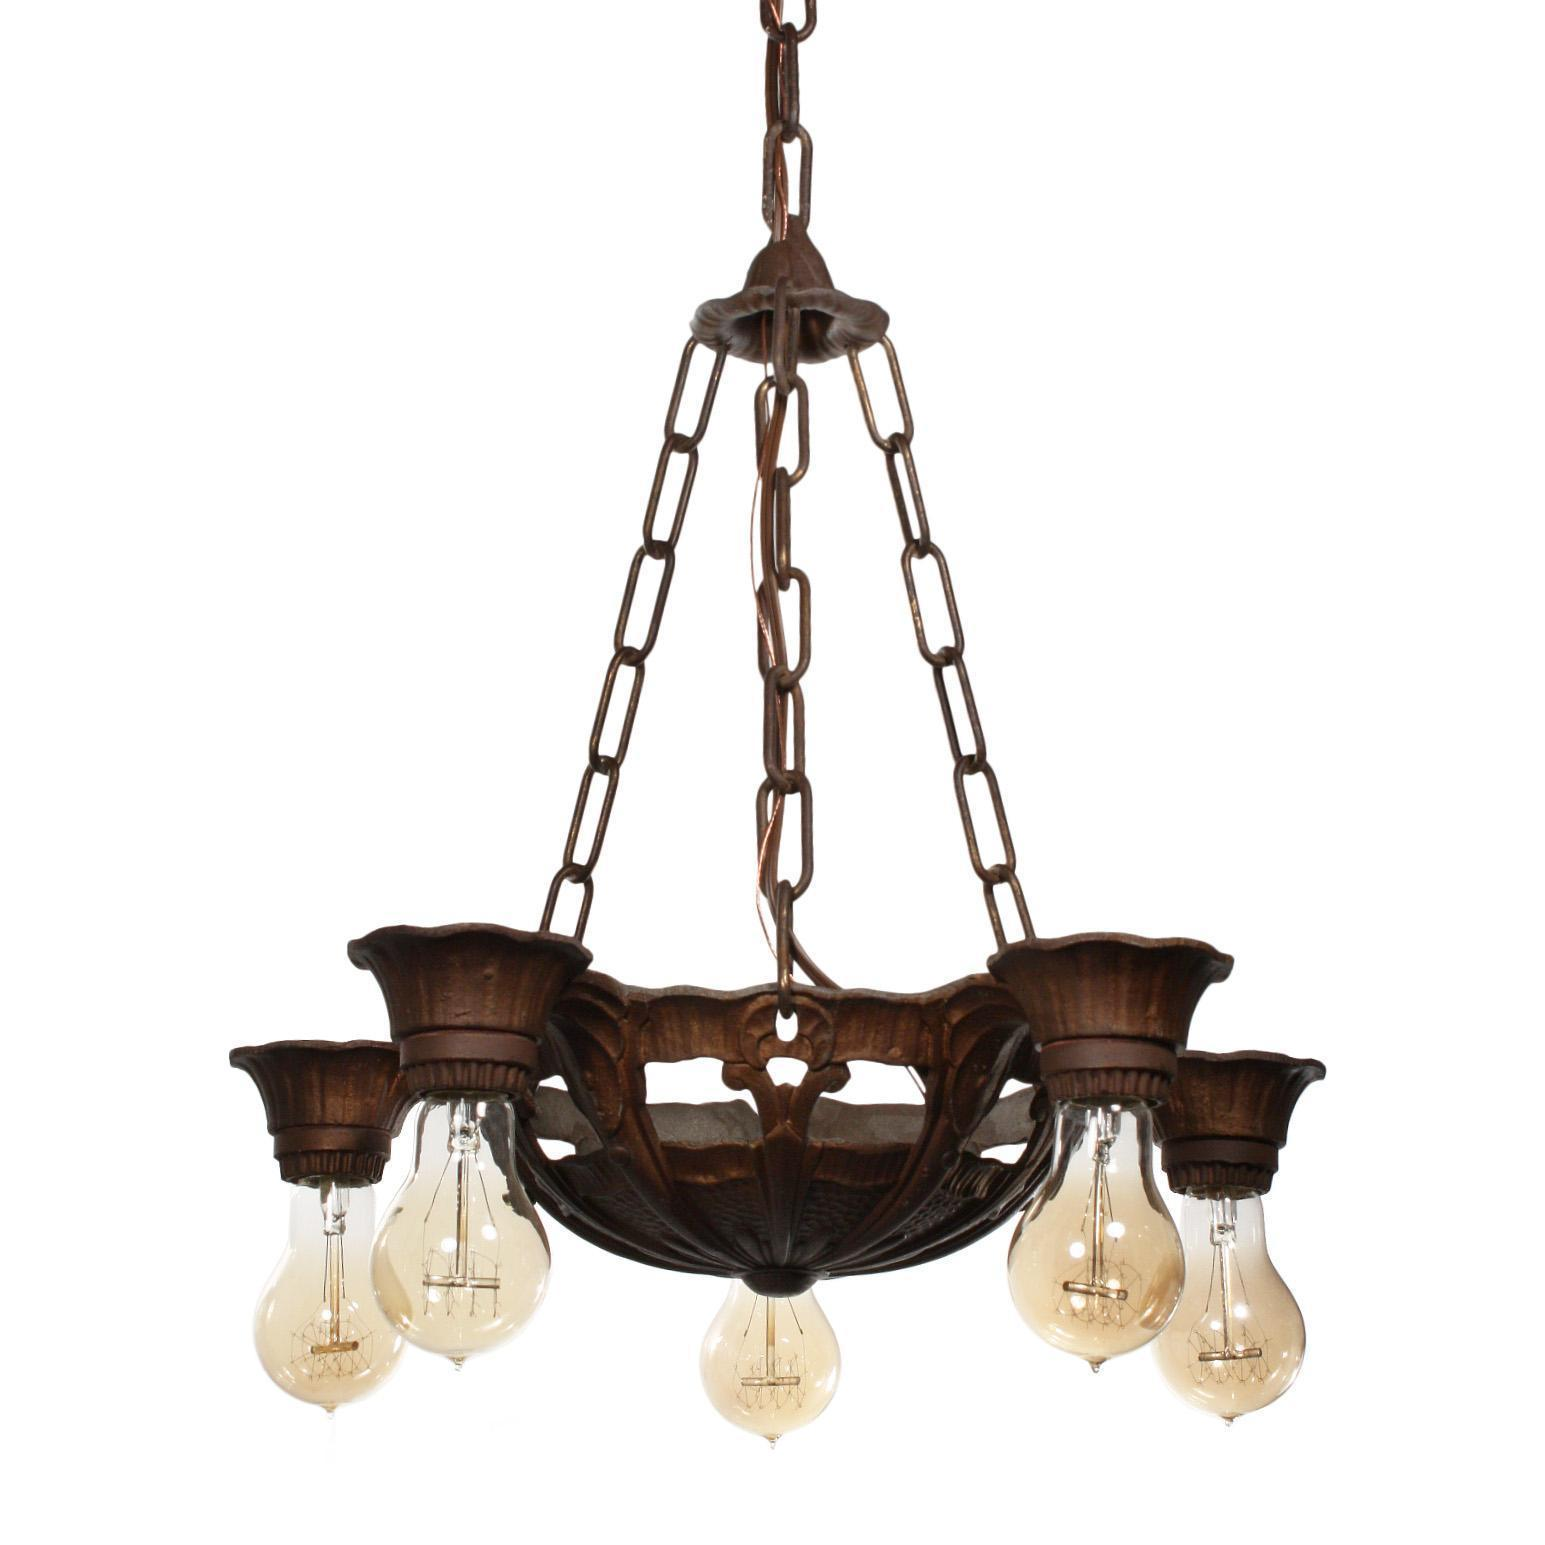 Antique Art Deco Five-Light Chandelier by Lincoln, c.1930